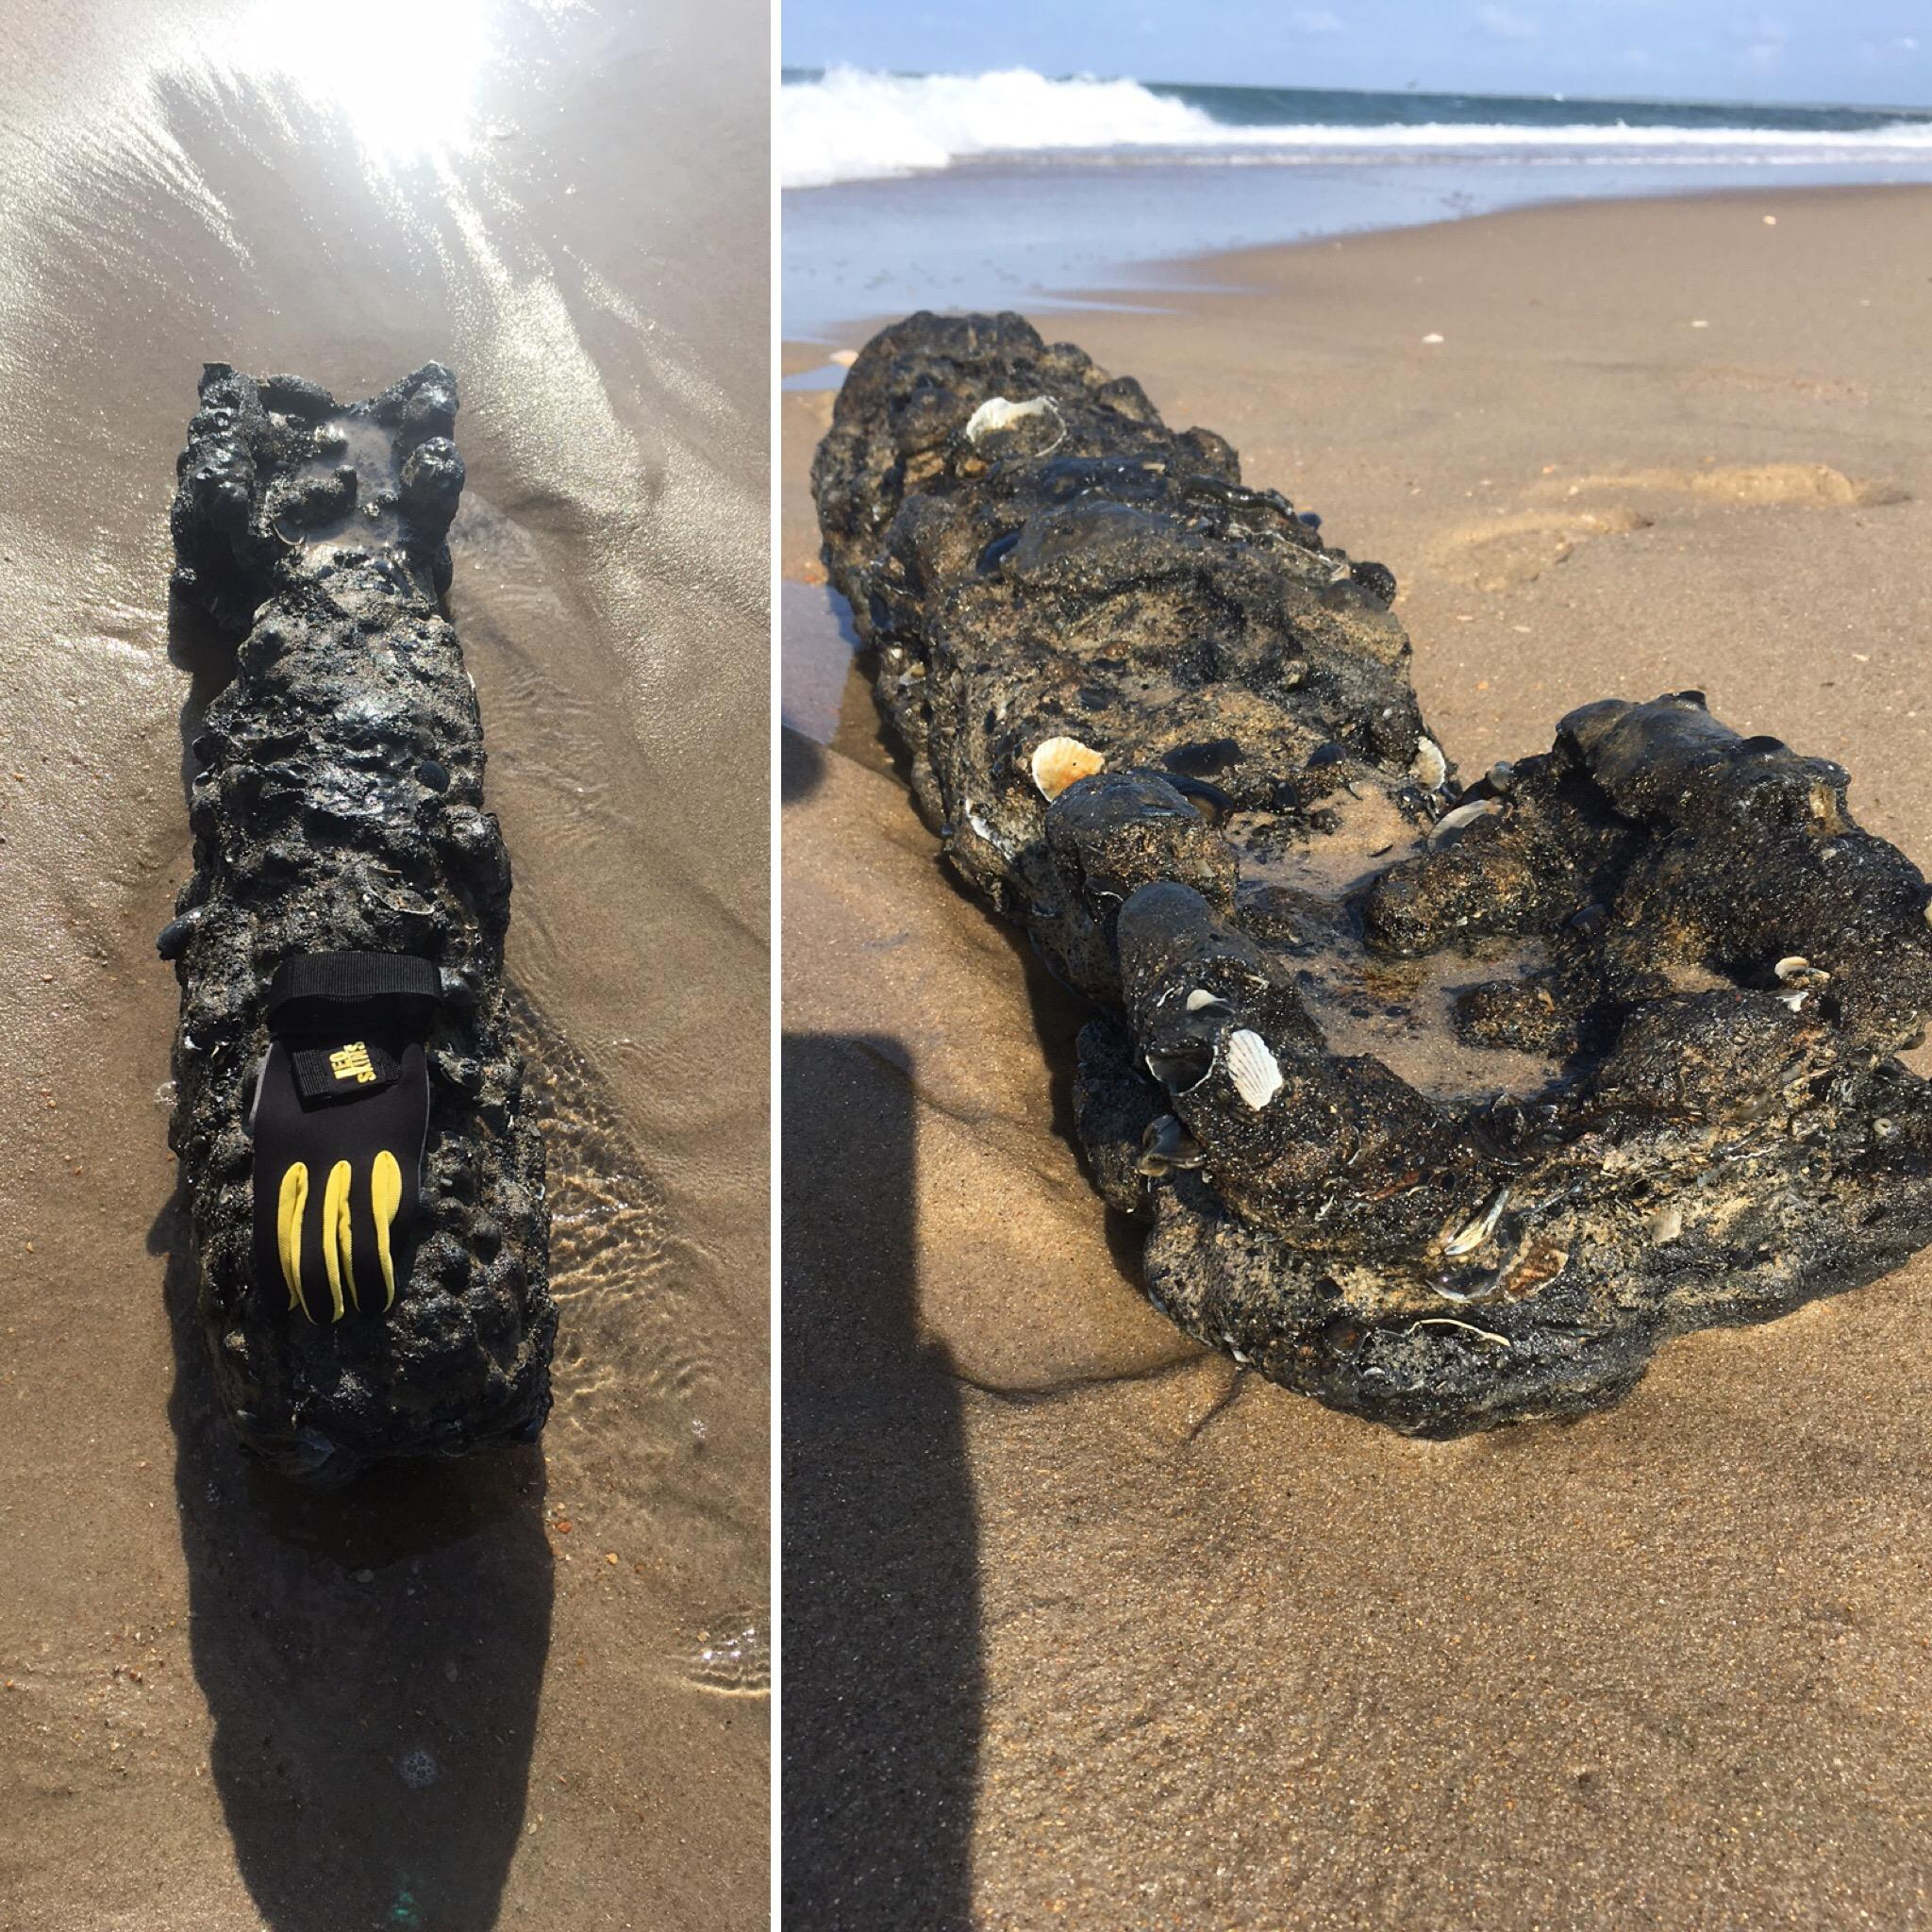 Shelly Island evacuated after possible ordnance washes ashore